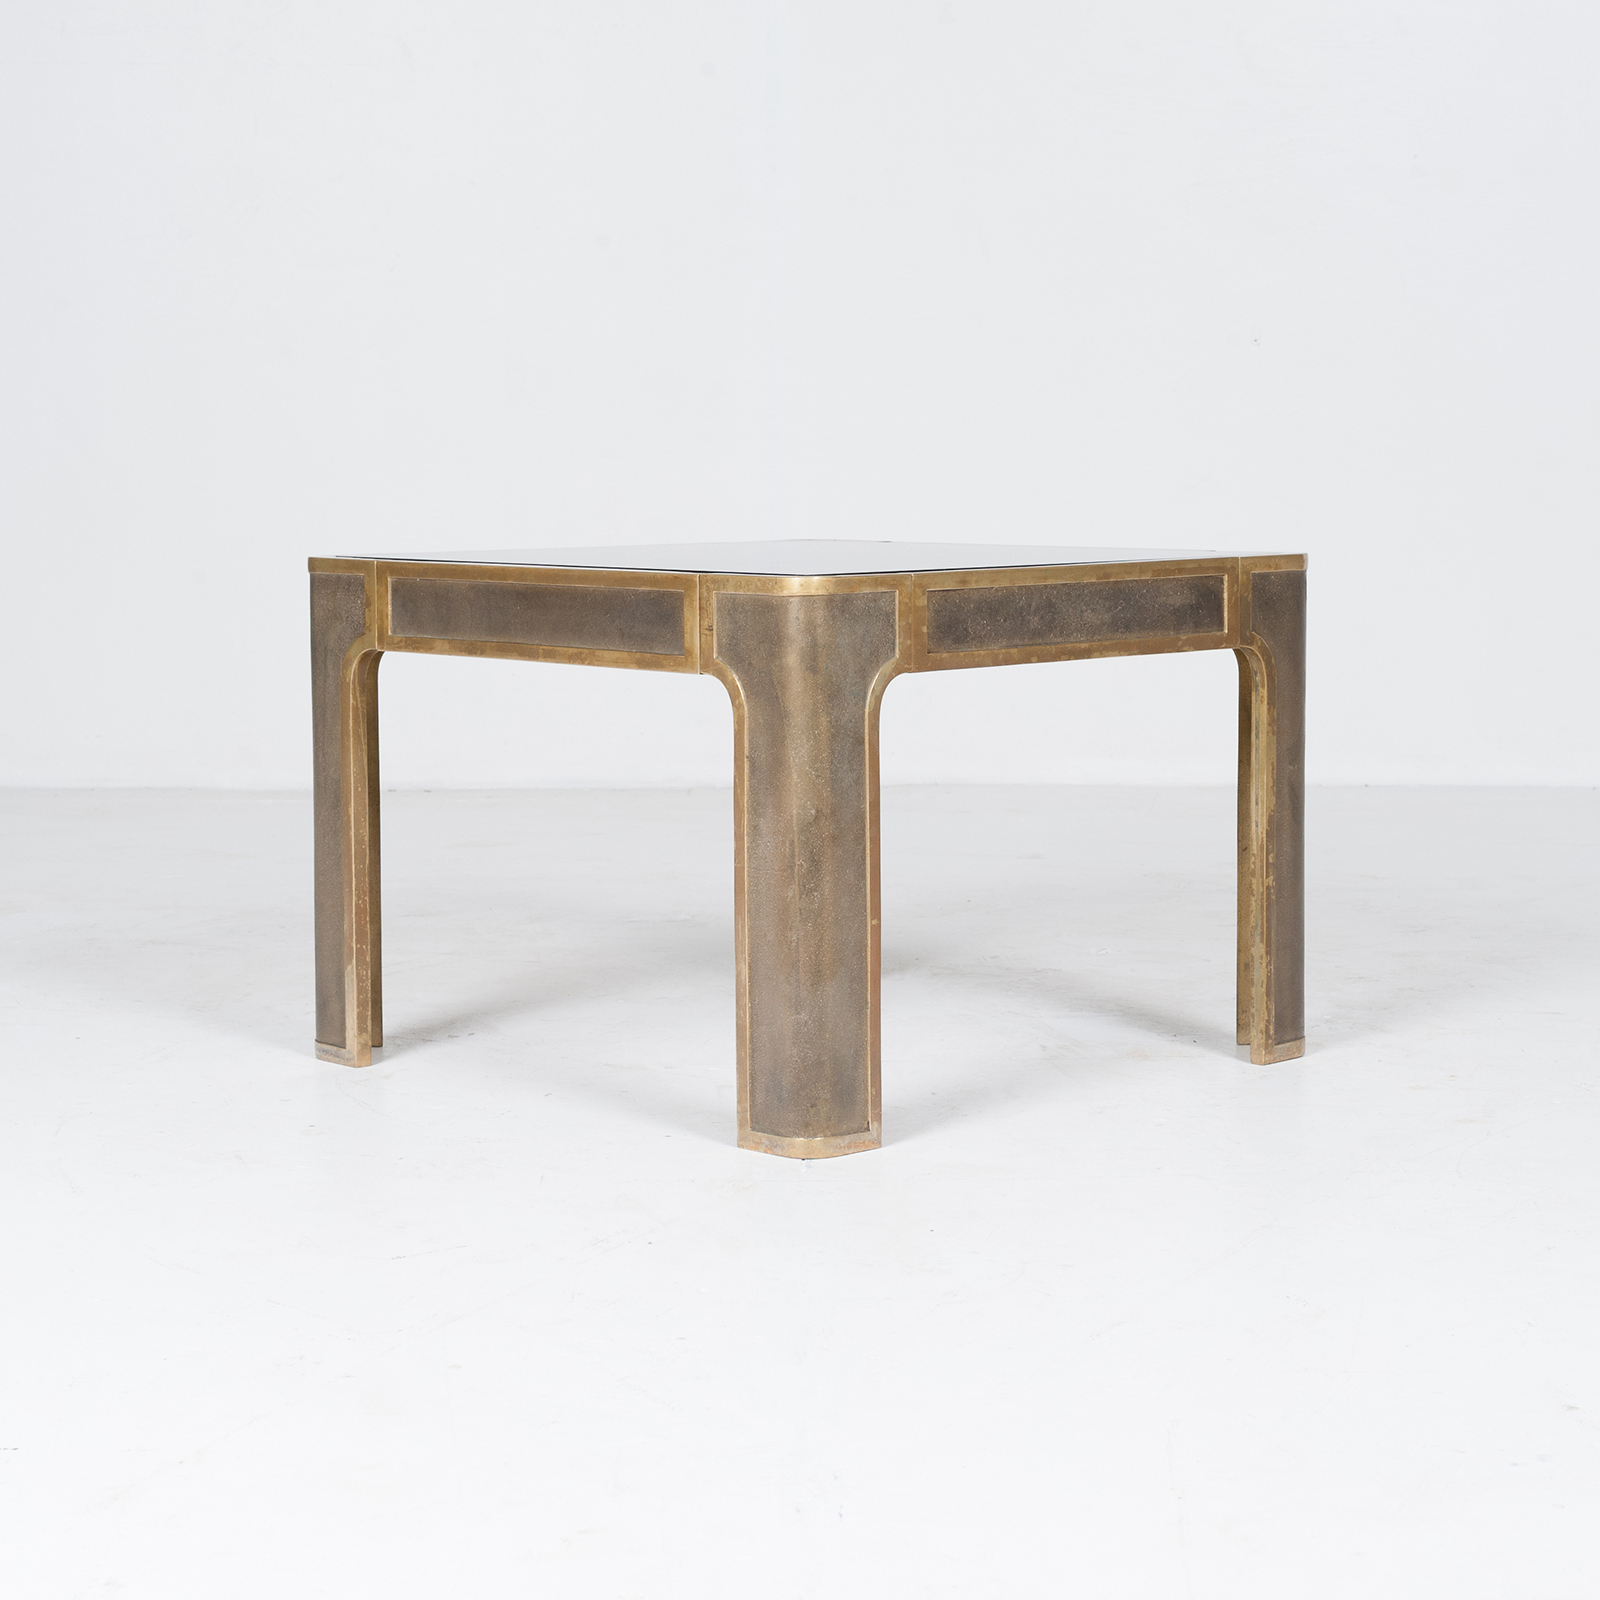 Square Coffee Table By Peter Ghyczy With Smoked Glass Top And Embossed Base, 1970s, The Netherlands896